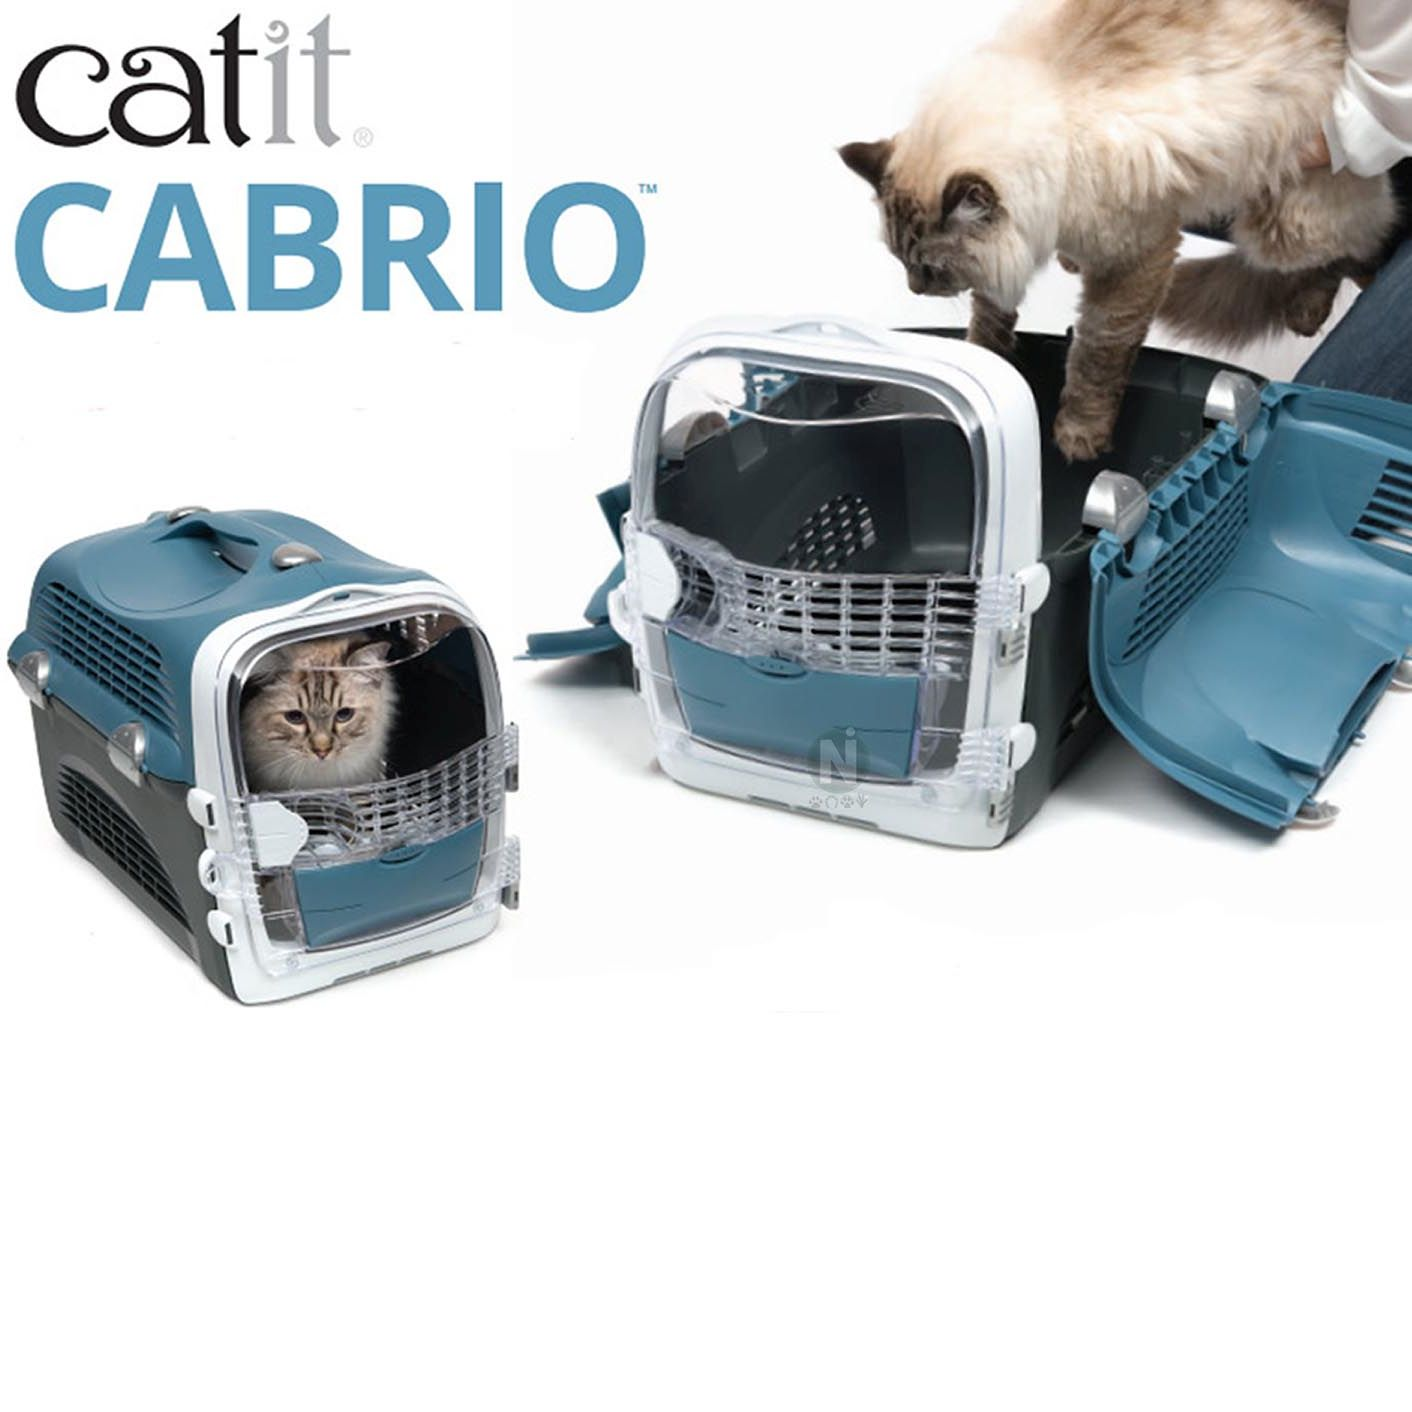 Catit Cabrio Carrier, Blue / Grey